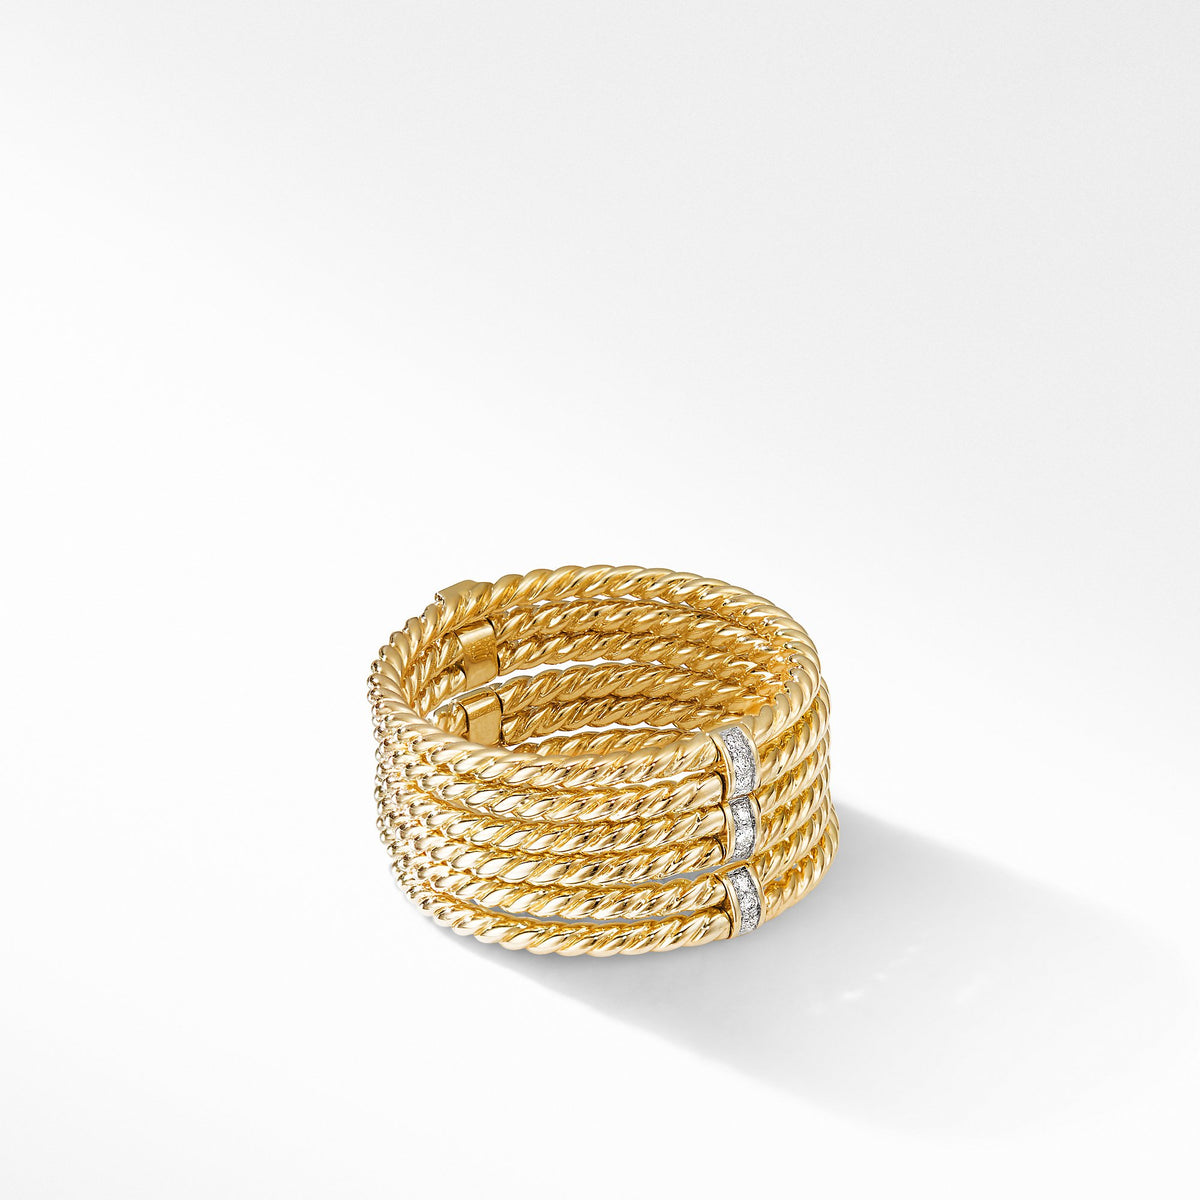 DY Origami 6-Row Cable Ring in 18K Yellow Gold with Diamonds